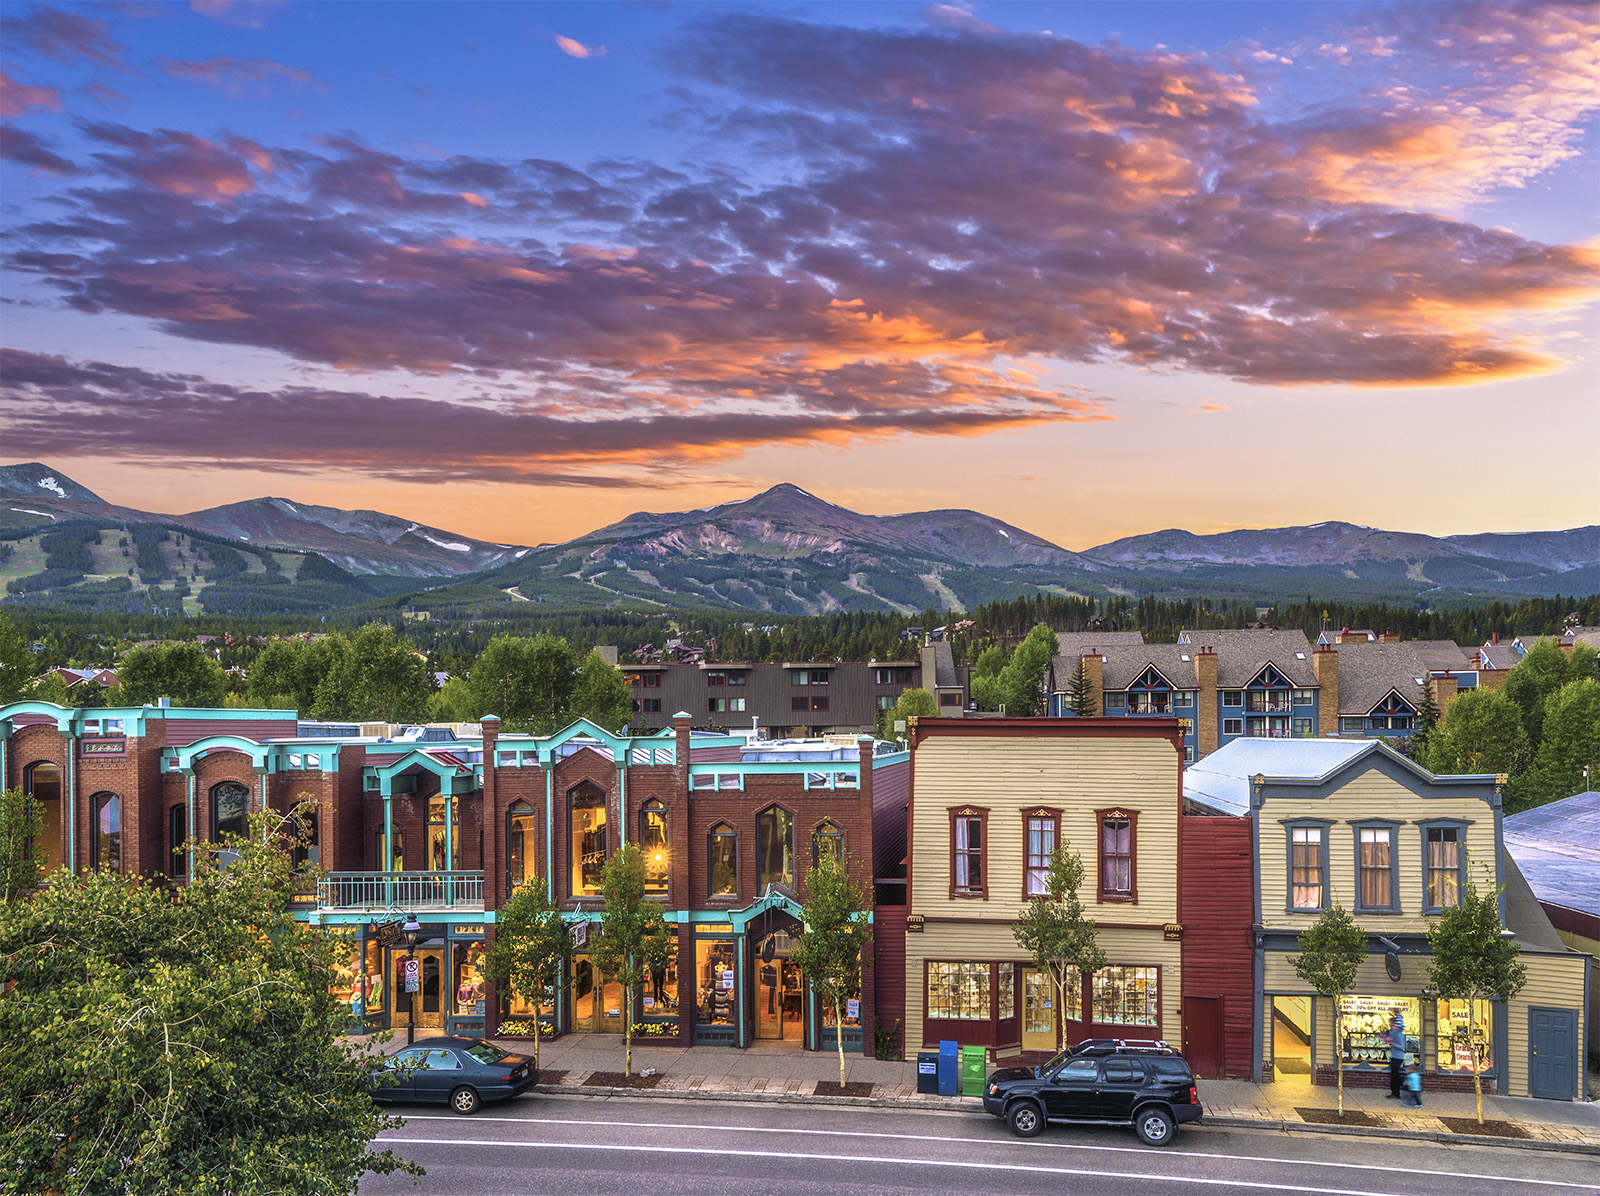 Main street of Breckenridge during sunset with the ski resort in the background